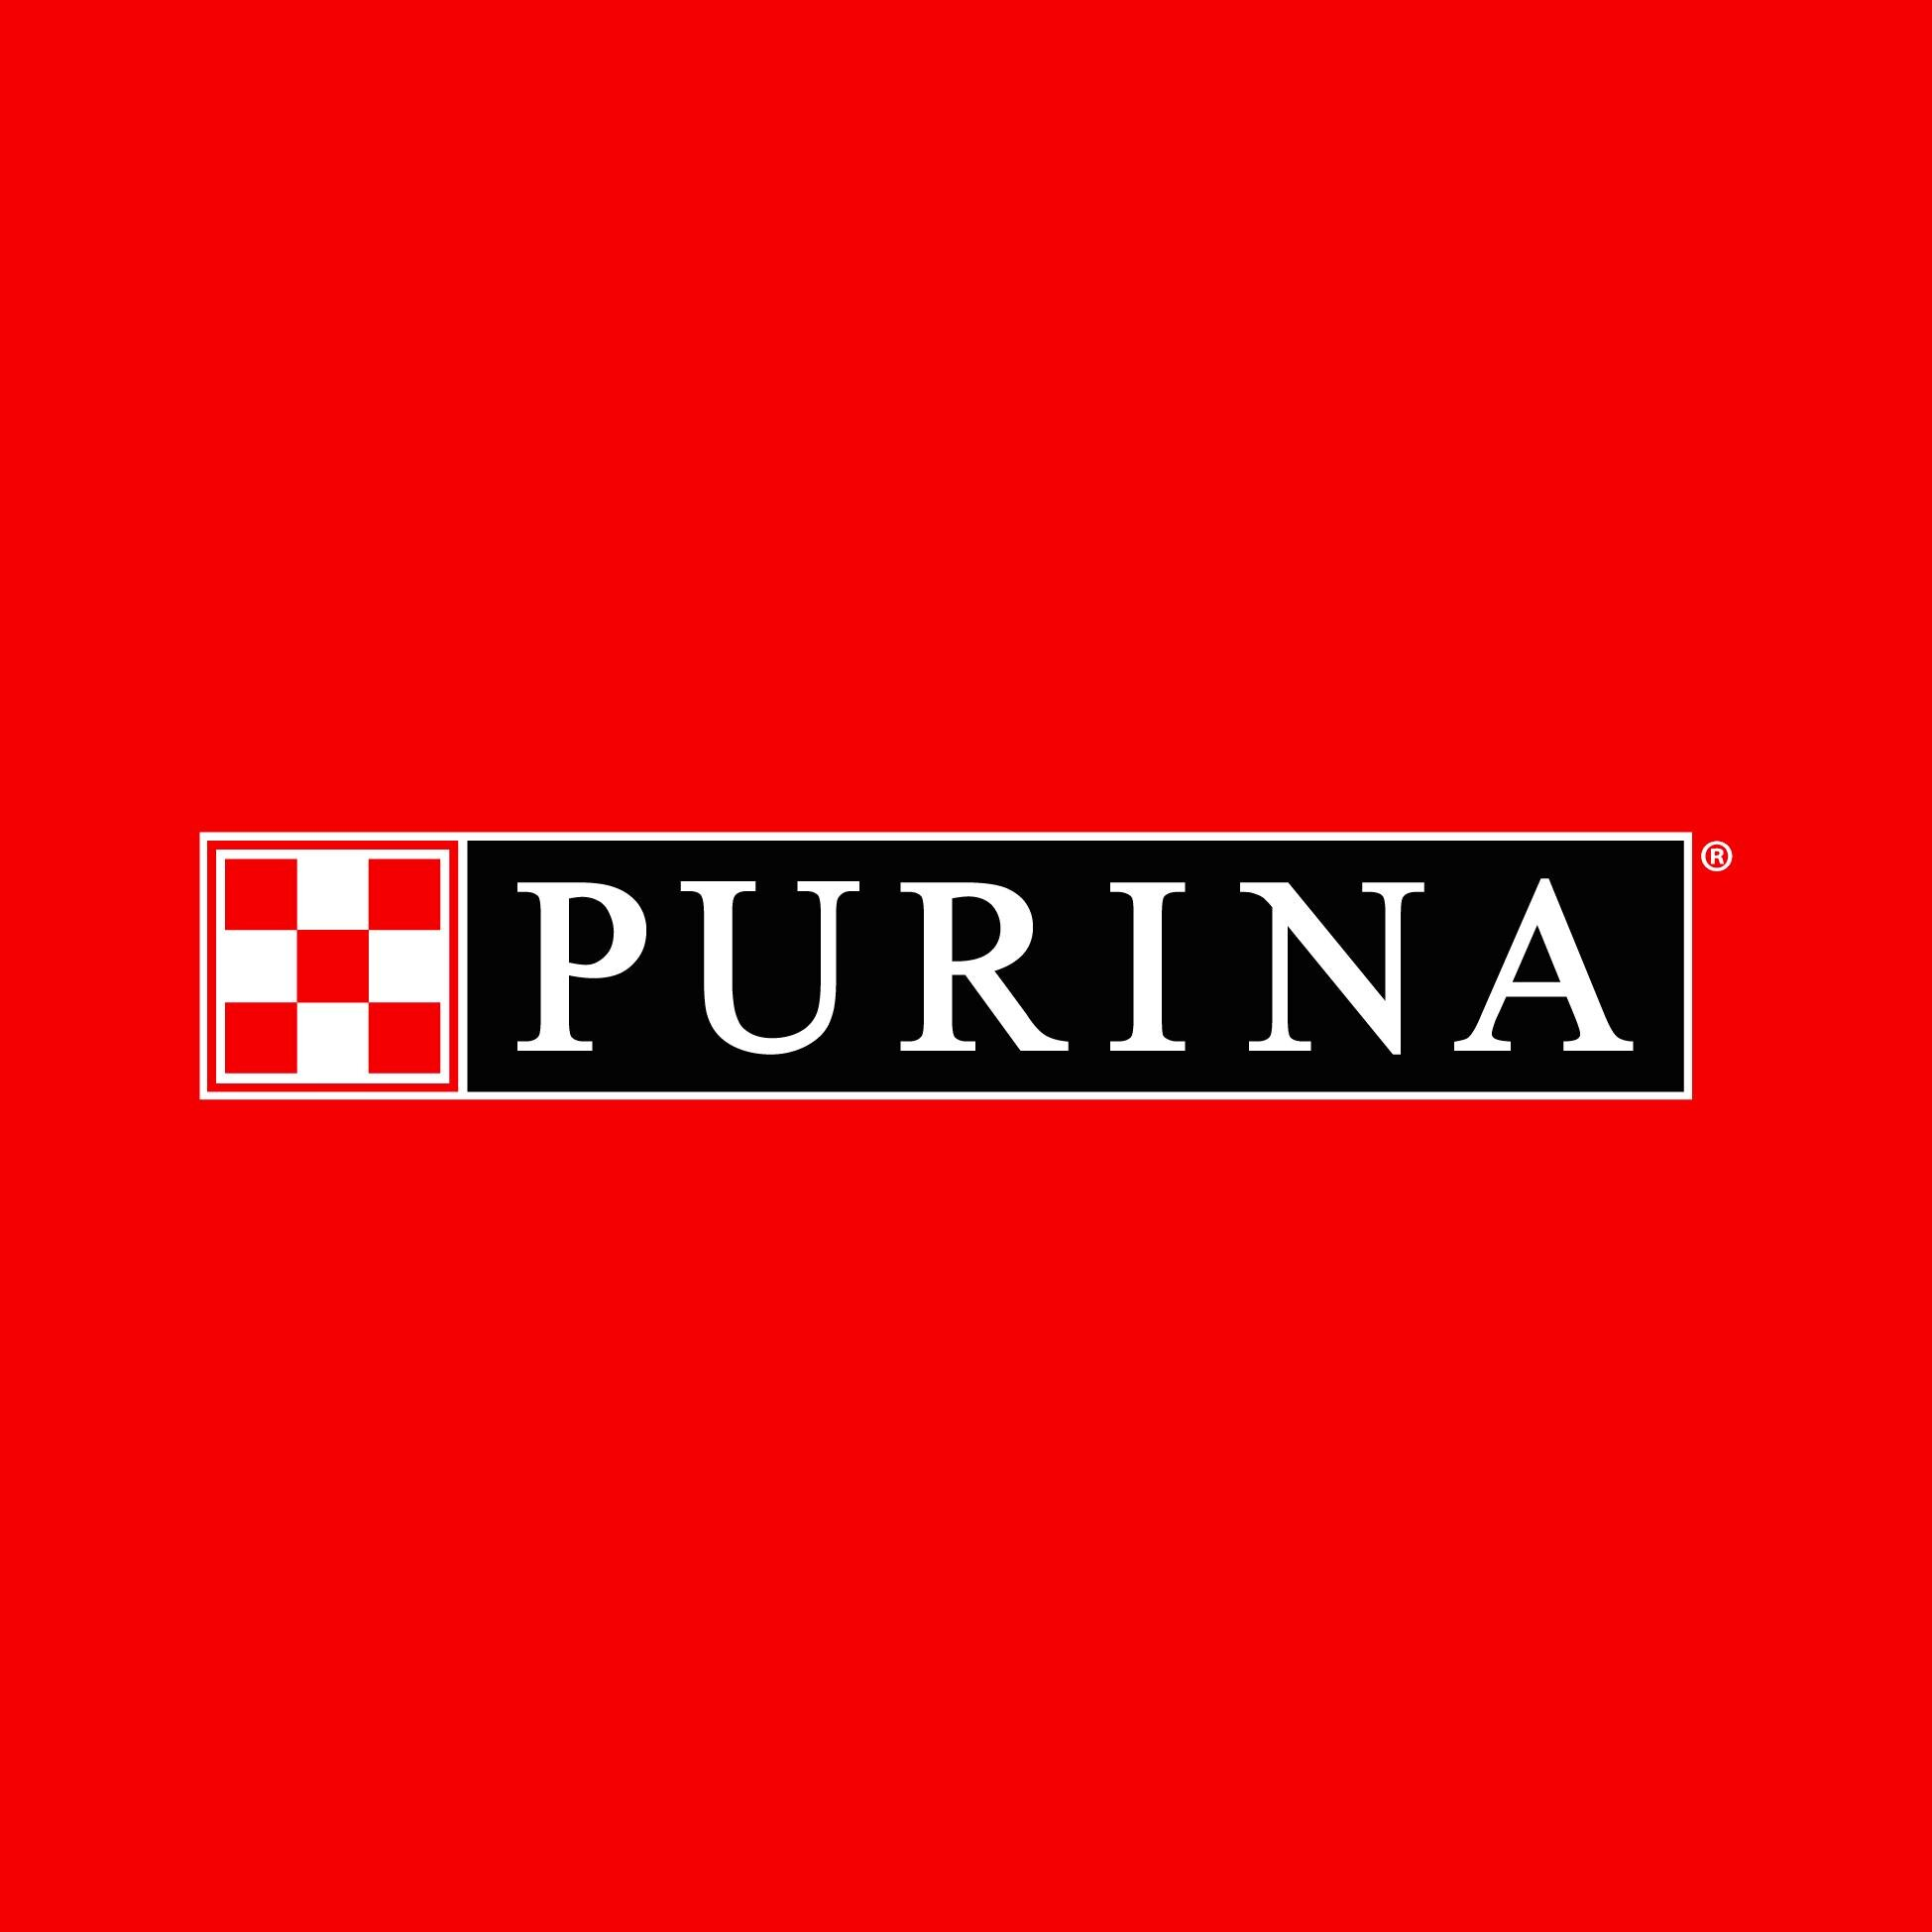 Purina one is role model for word-of-mouth marketing